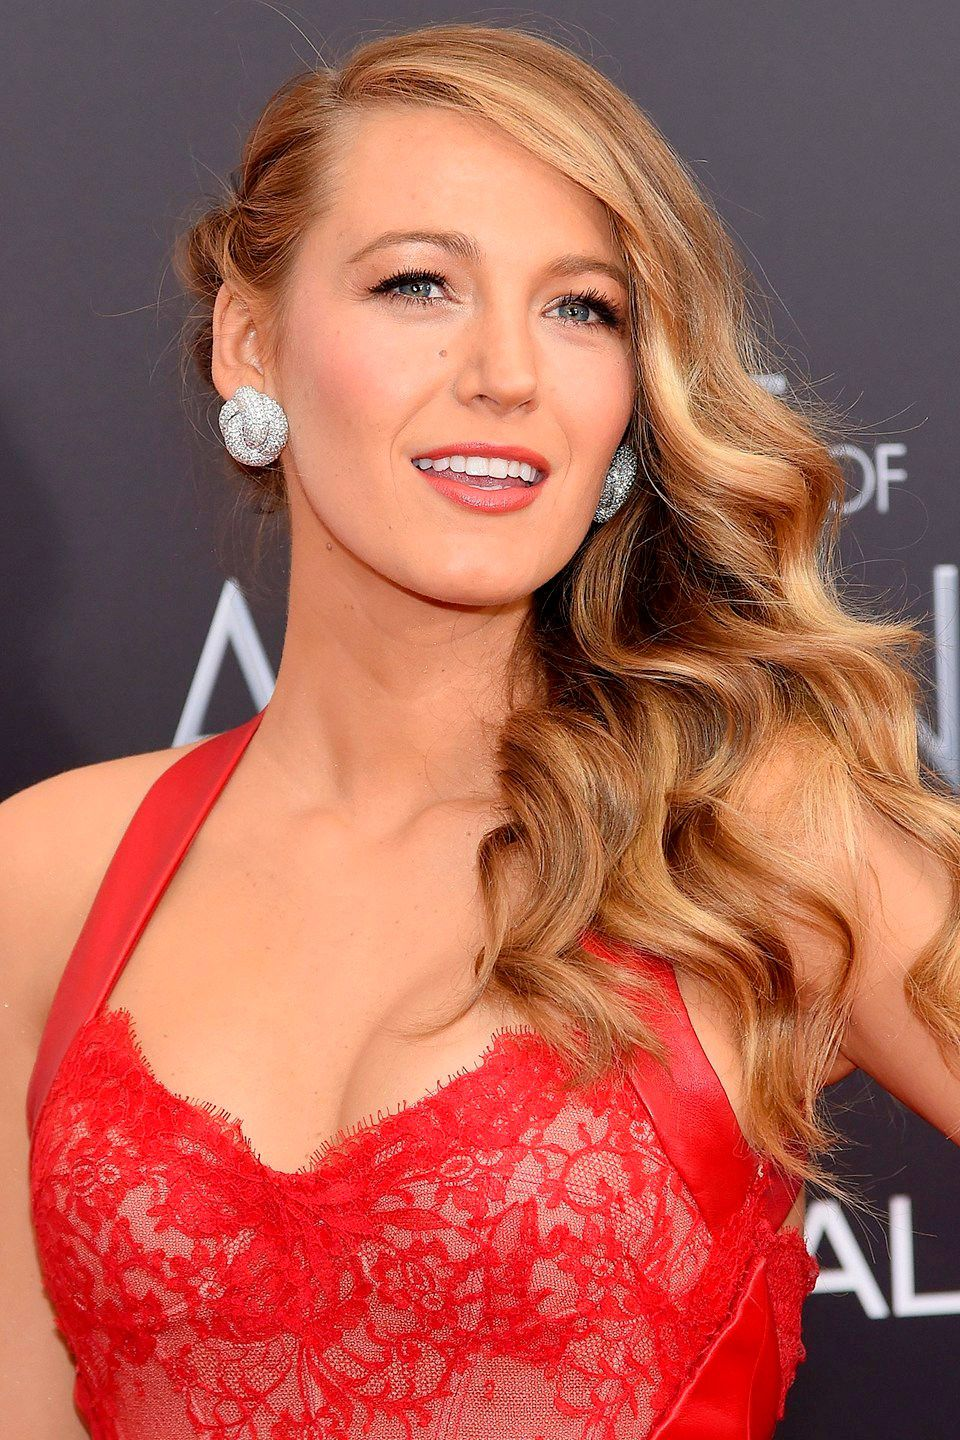 Blake lively blonde hair